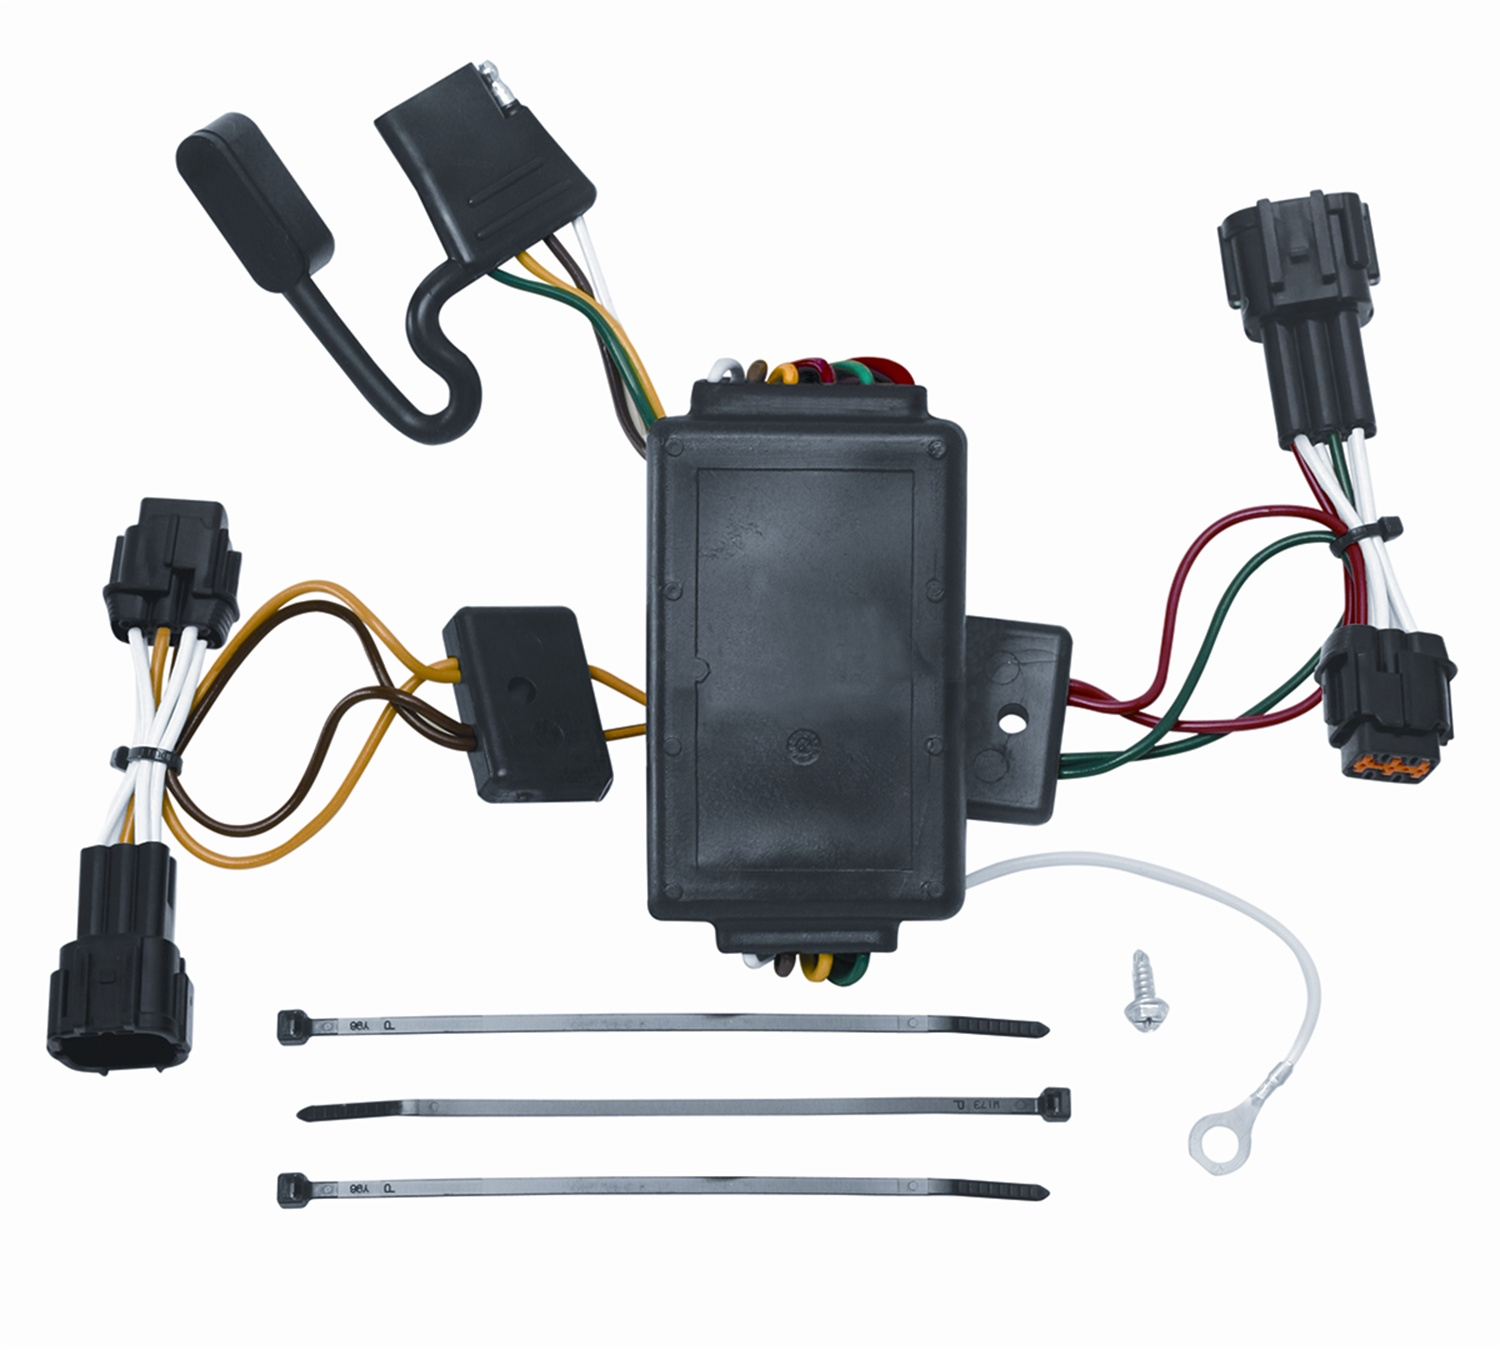 hight resolution of vehicle to trailer wiring harness connector for 09 12 nissan cube plug play walmart